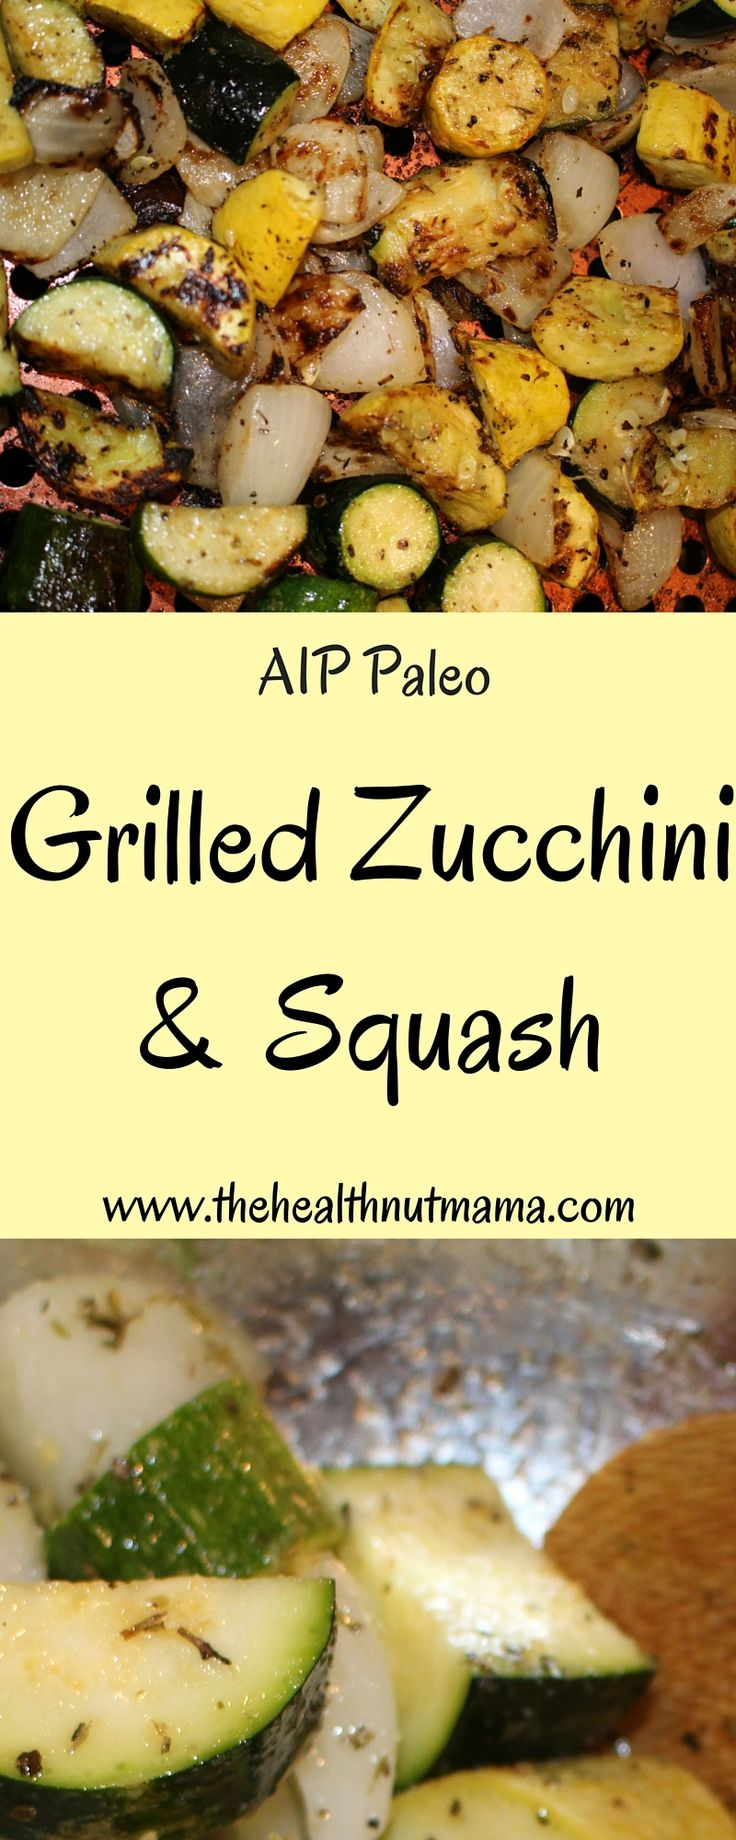 Quick & Delicious Grilled Zucchini Squash! Very Easy to make! (Paleo, AIP) www.thehealthnutmama.com